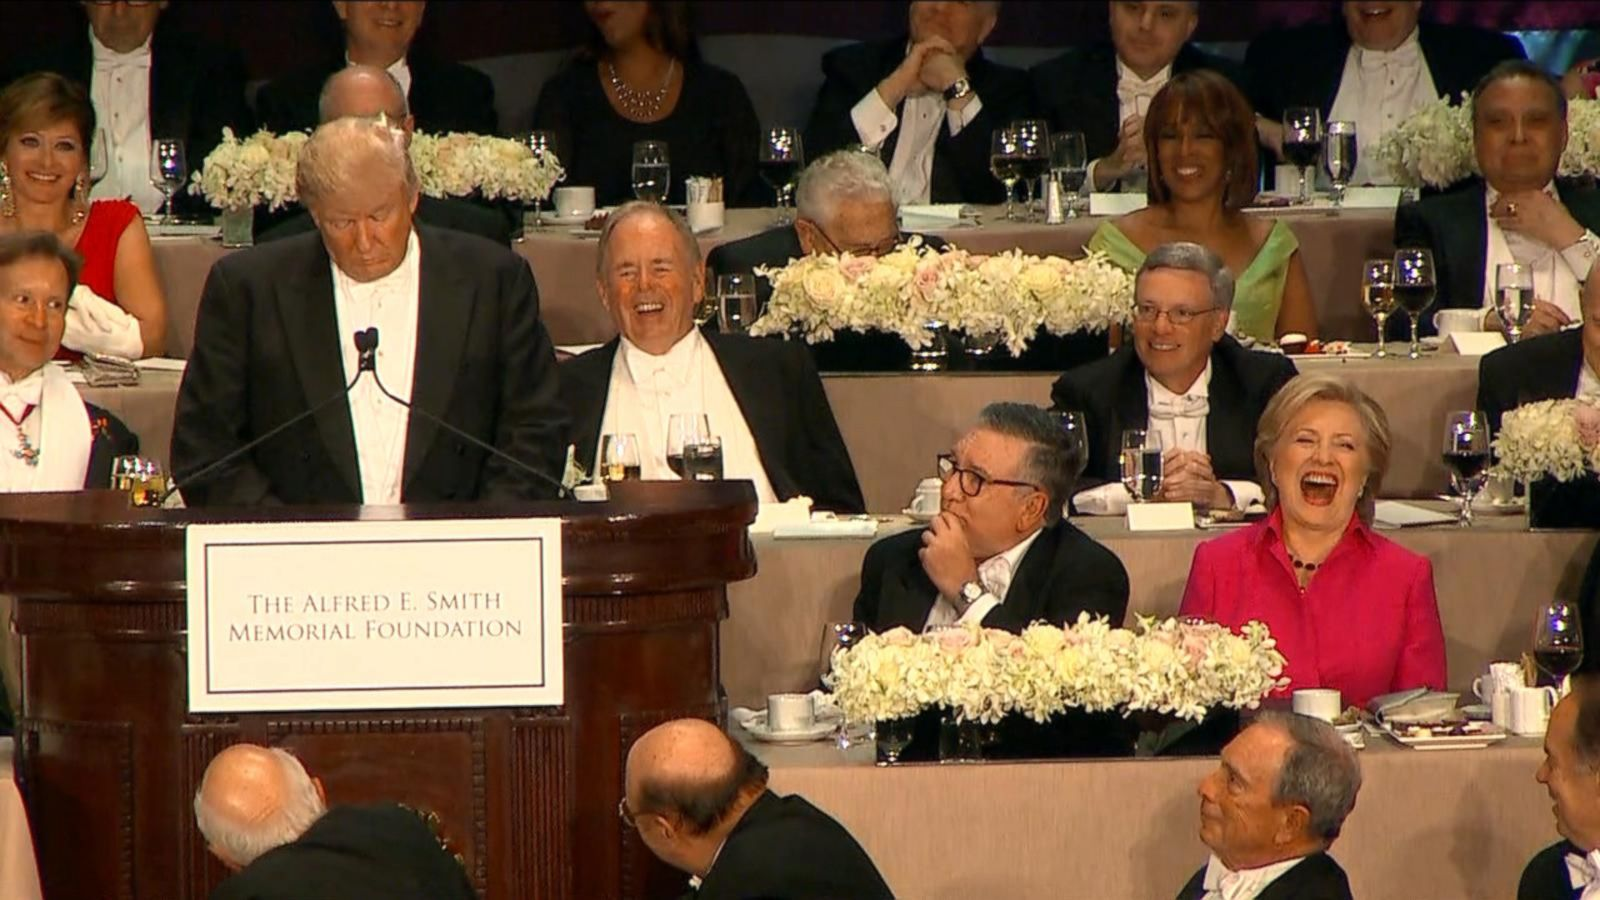 VIDEO: Best Jabs From the Al Smith Dinner